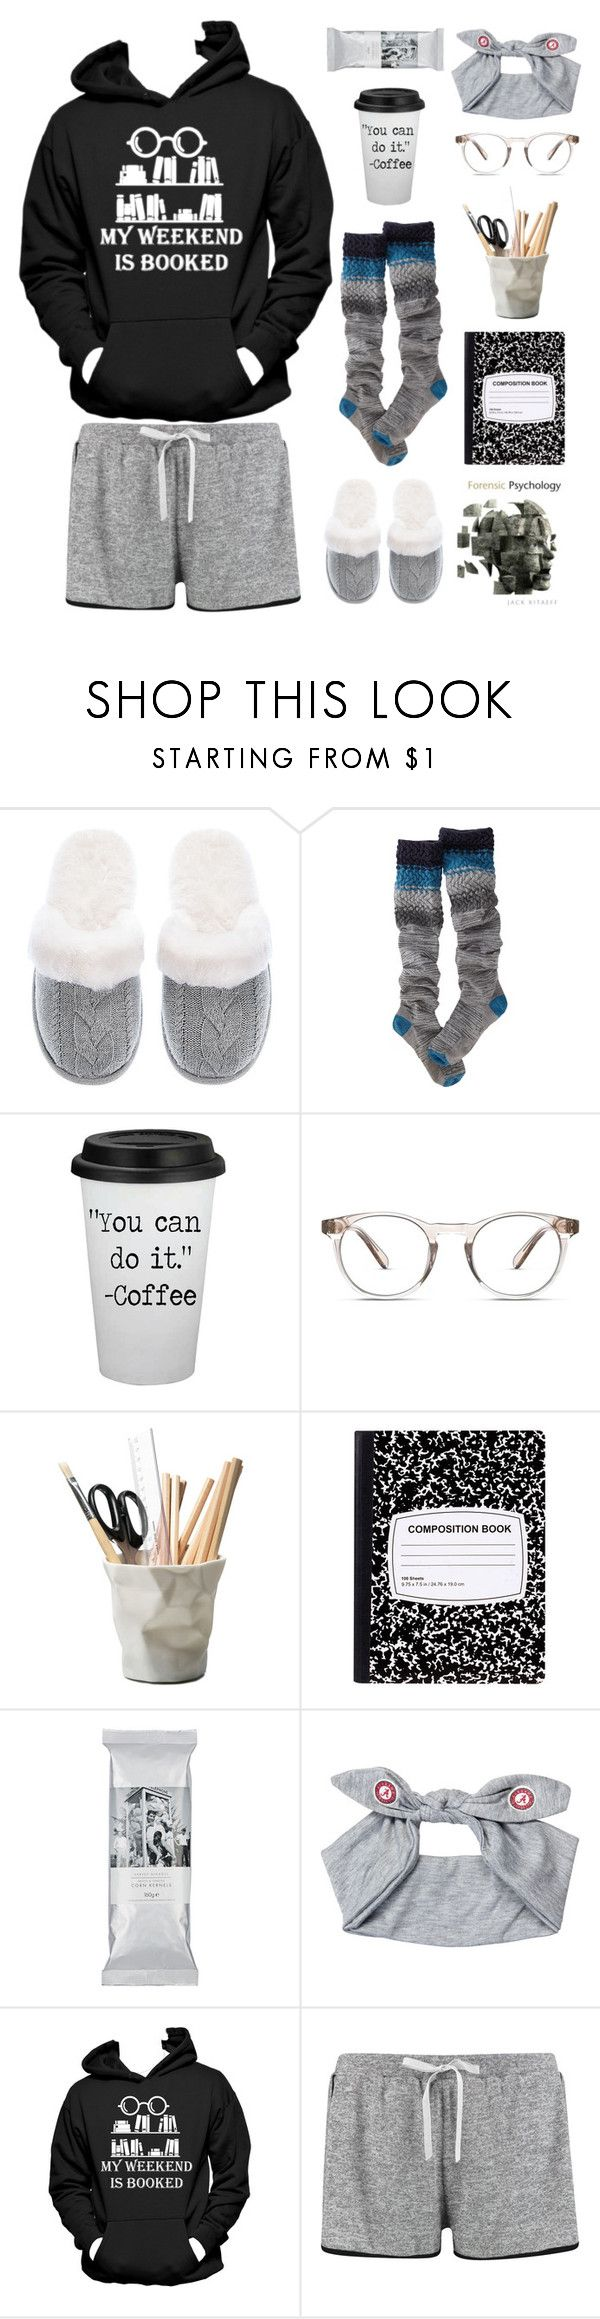 """""""Studying Time"""" by tina-kene ❤ liked on Polyvore featuring Victoria's Secret, Smartwool, Finlay & Co., ESSEY and Boohoo"""